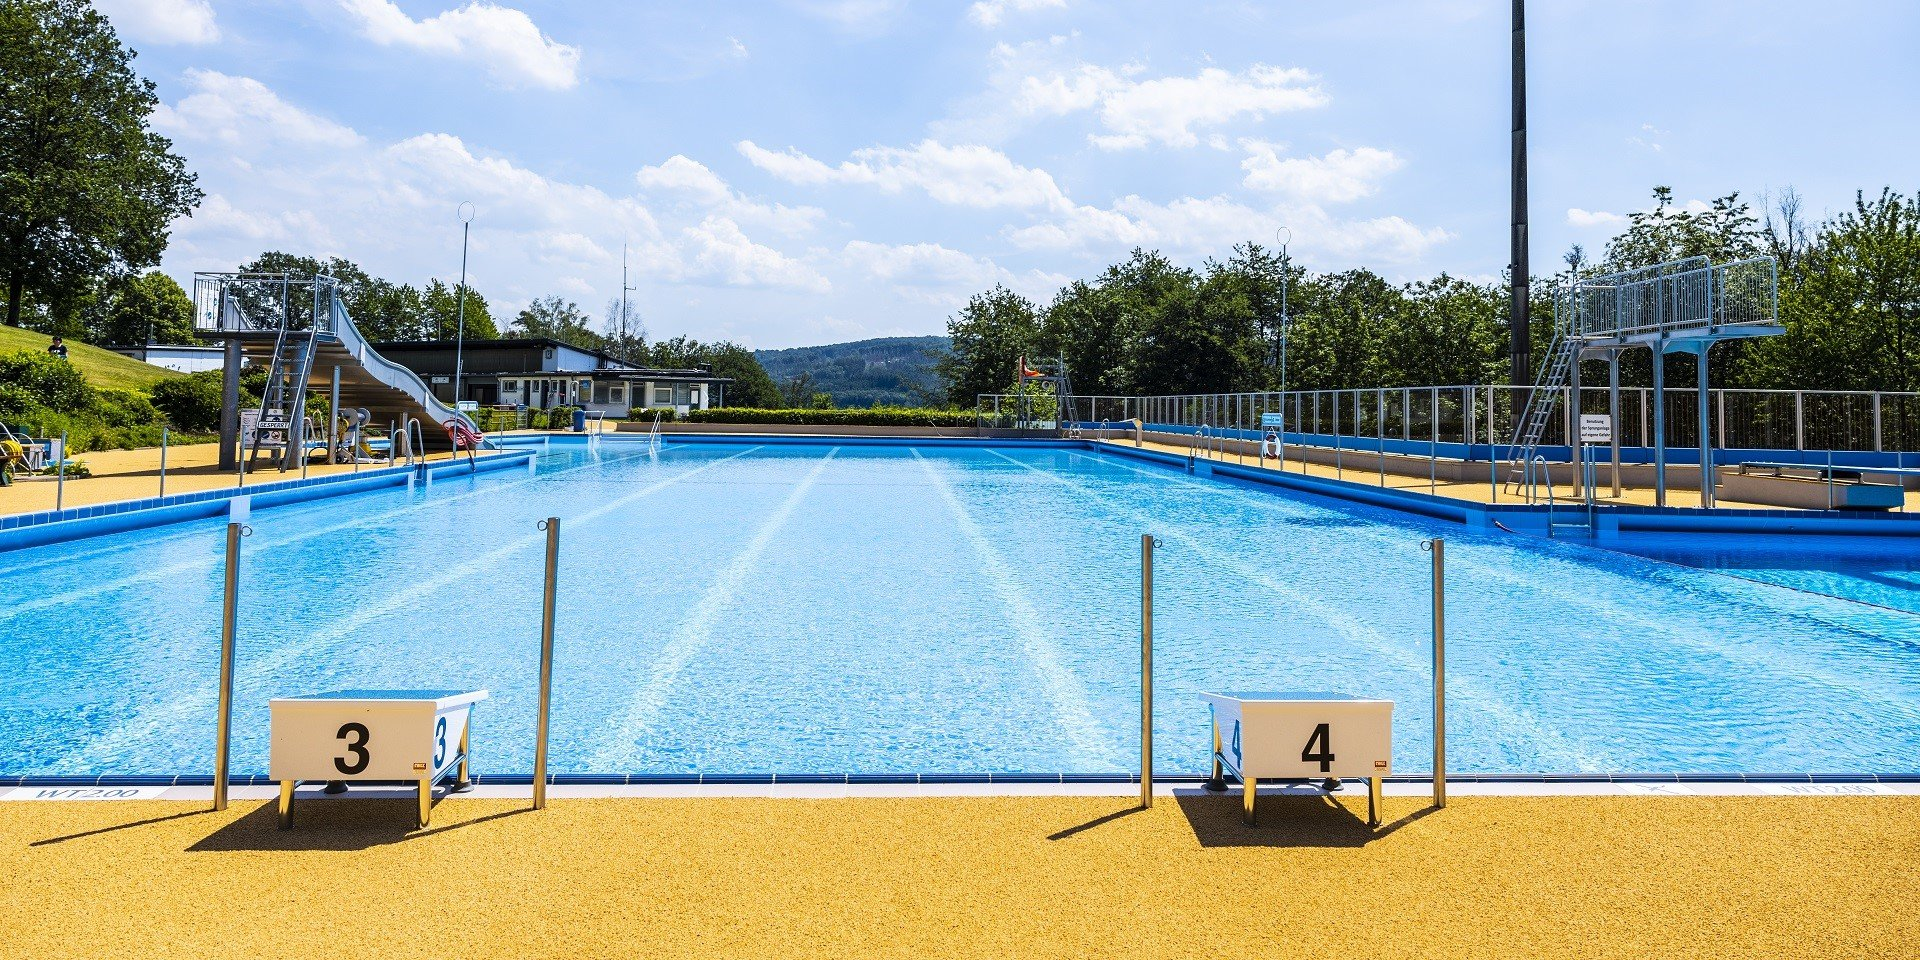 Panoramabad Engelskirchen Front | Steuler Pool Linings